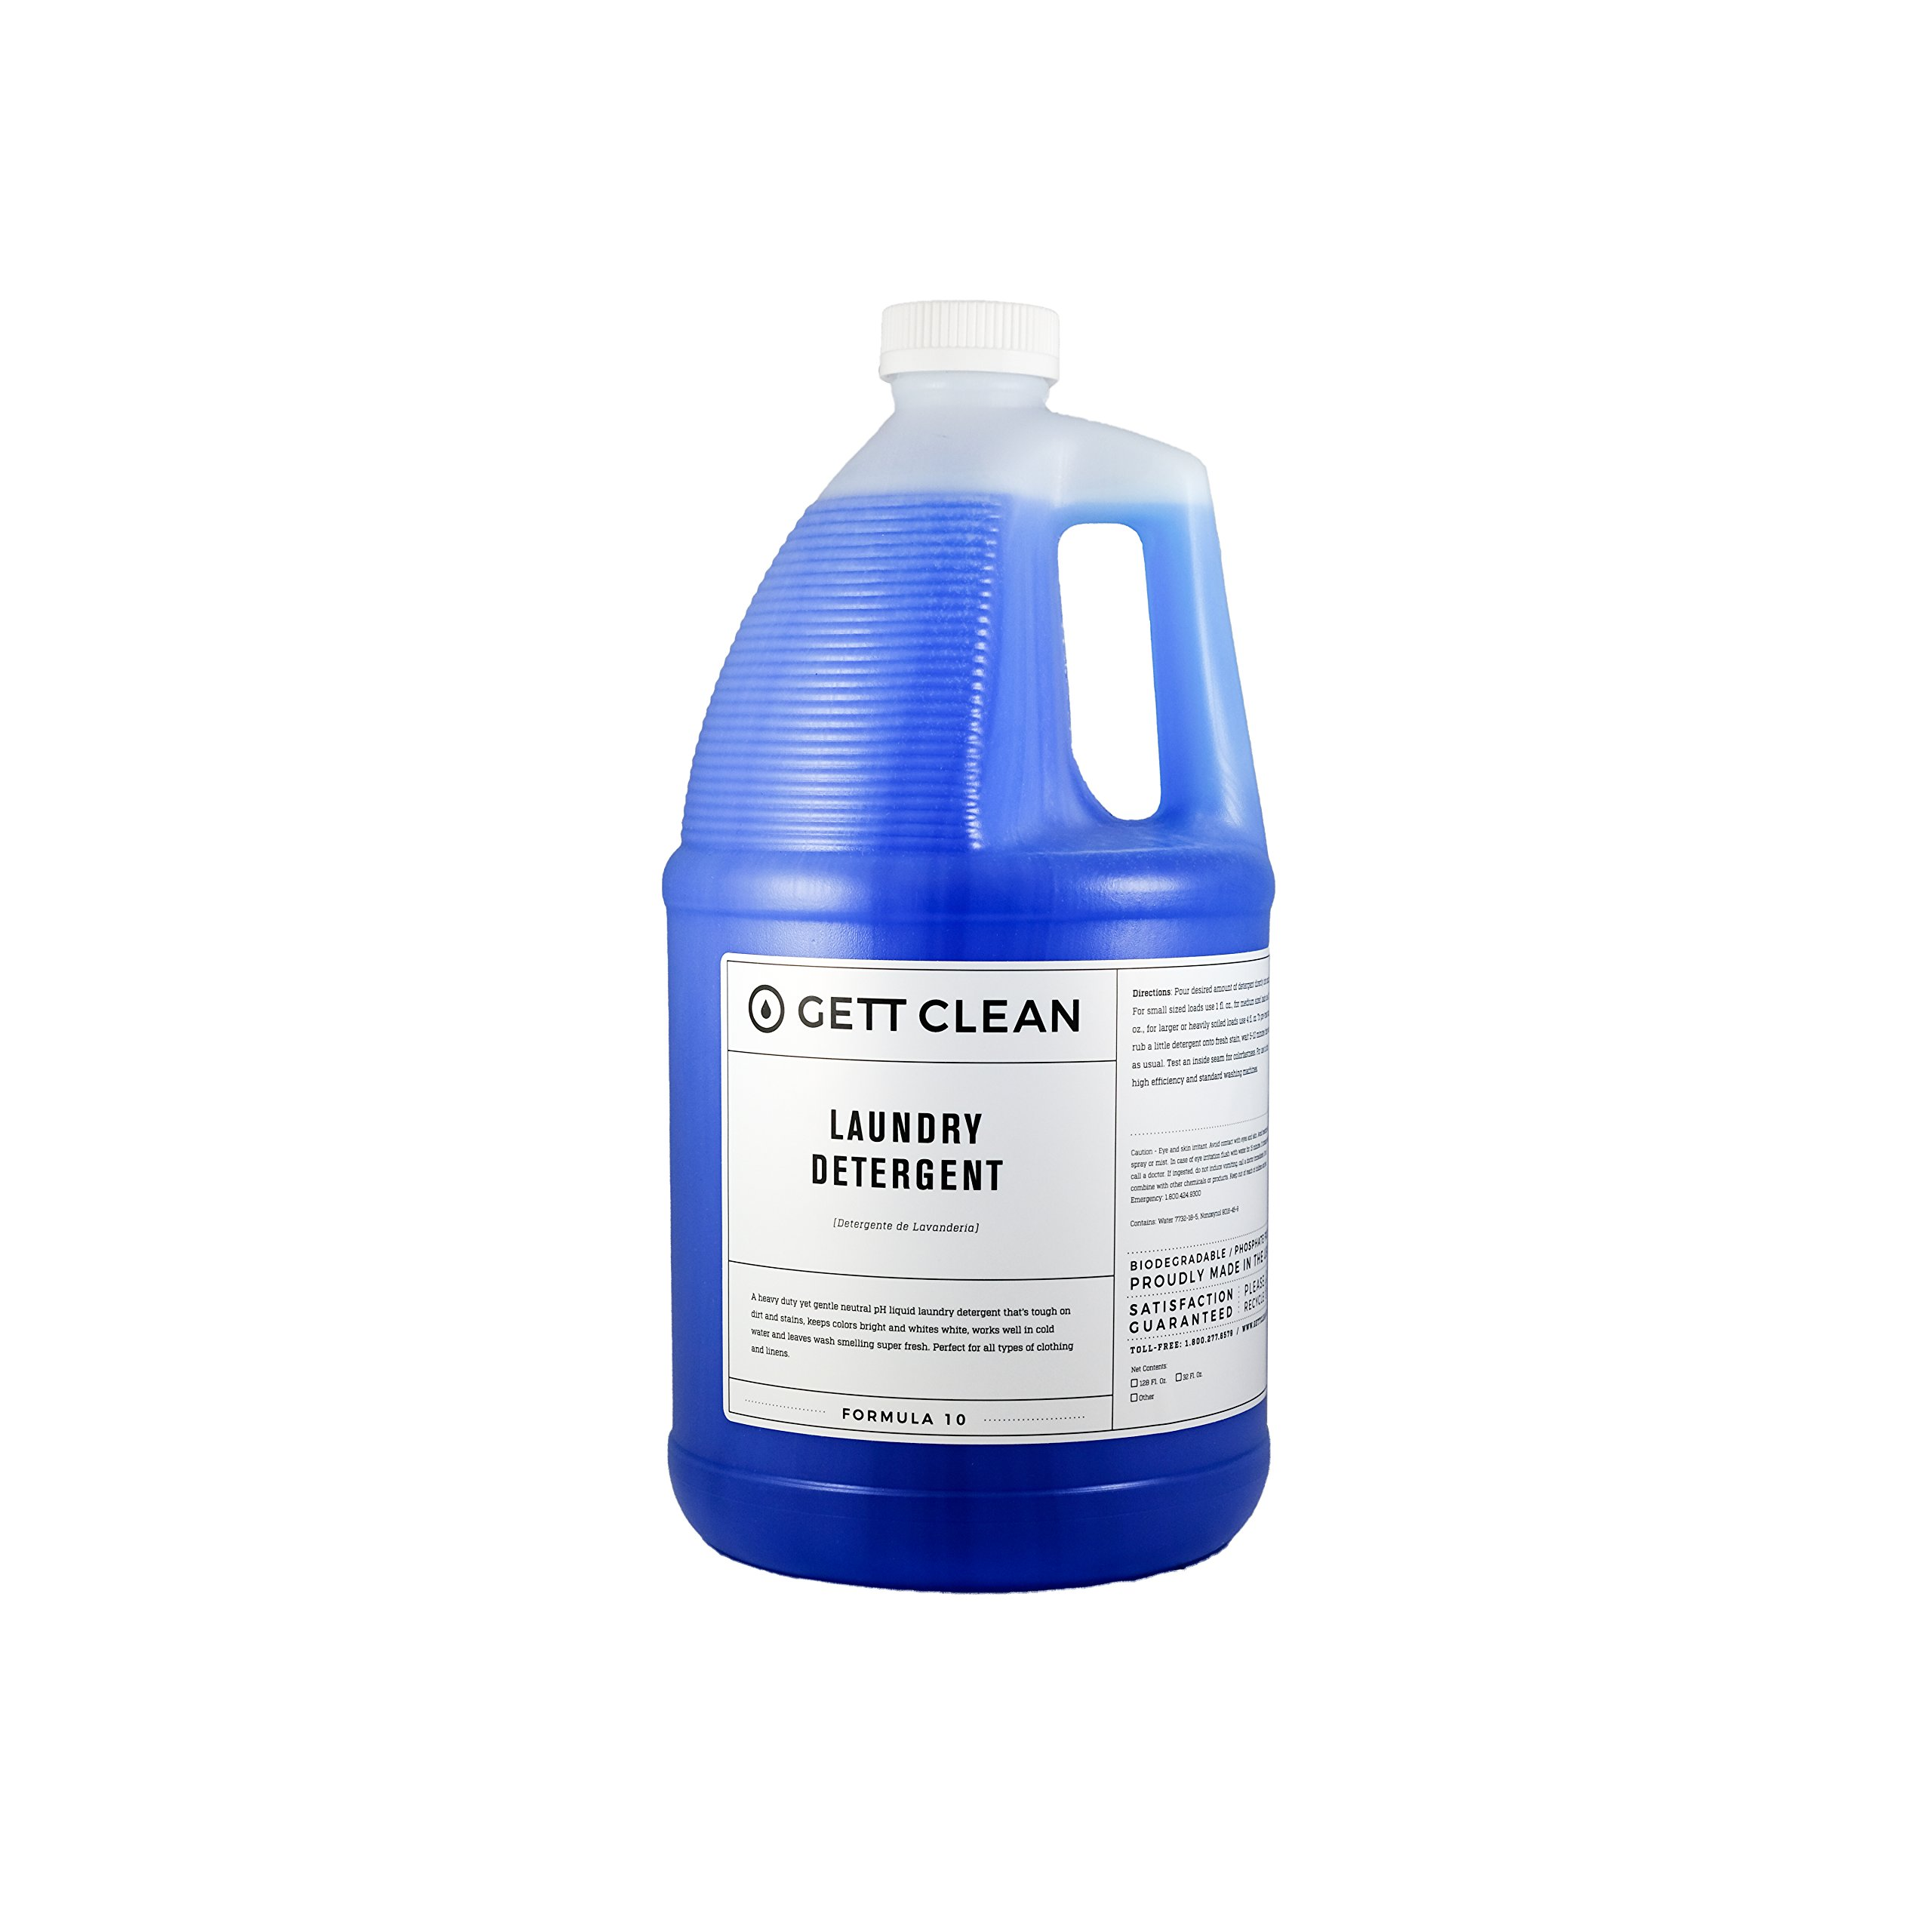 GETT CLEAN Liquid Laundry Detergent, 1 Gallon, Concentrated Professional Strength, Industrial or Home Use